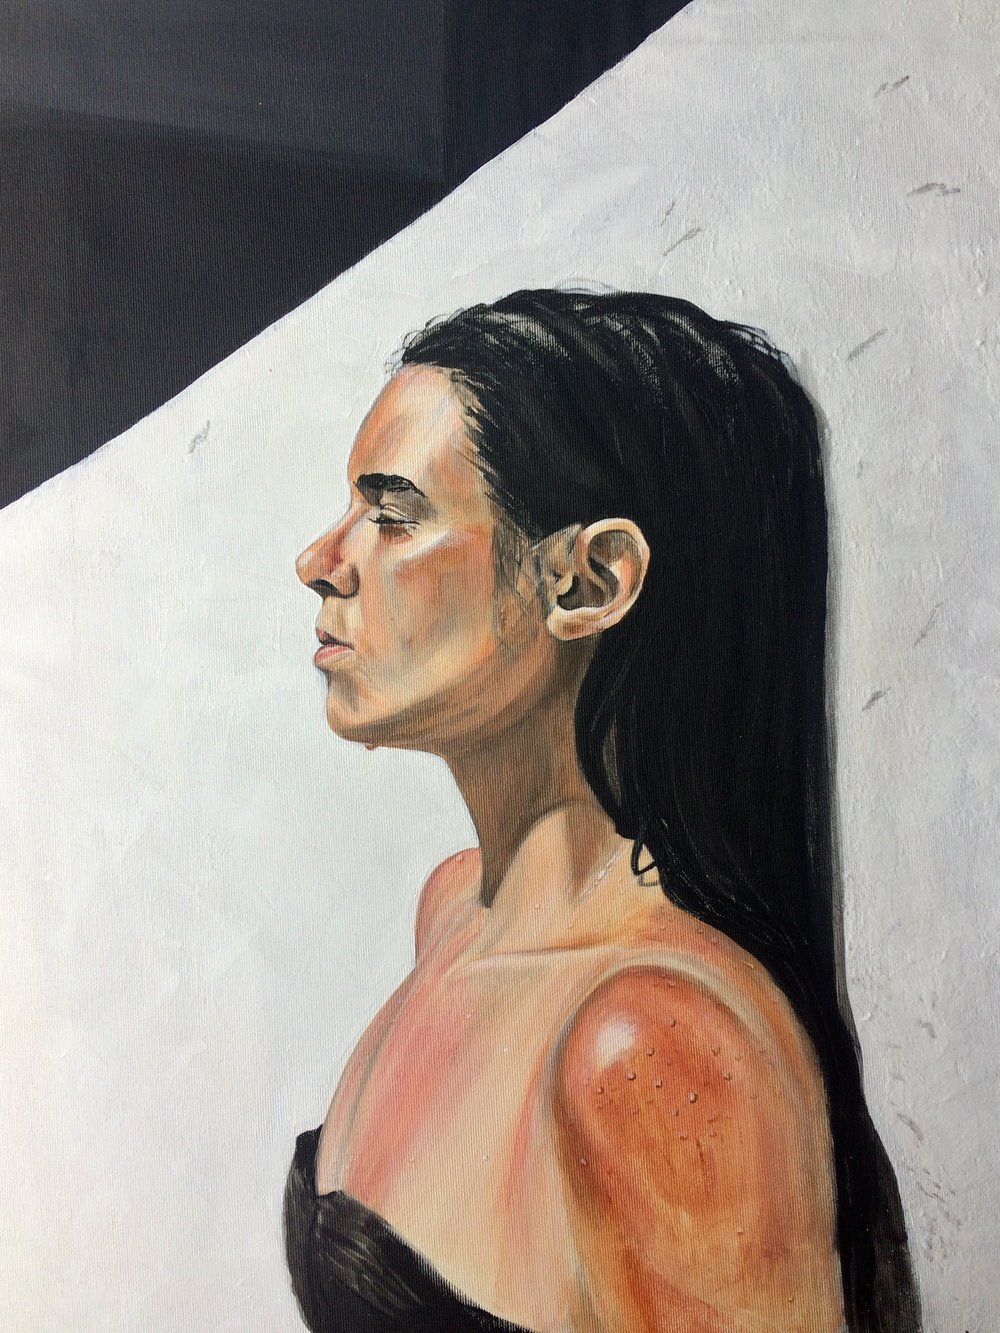 Ana.  Acrylic on Canvas, 61 x50 cm. Available